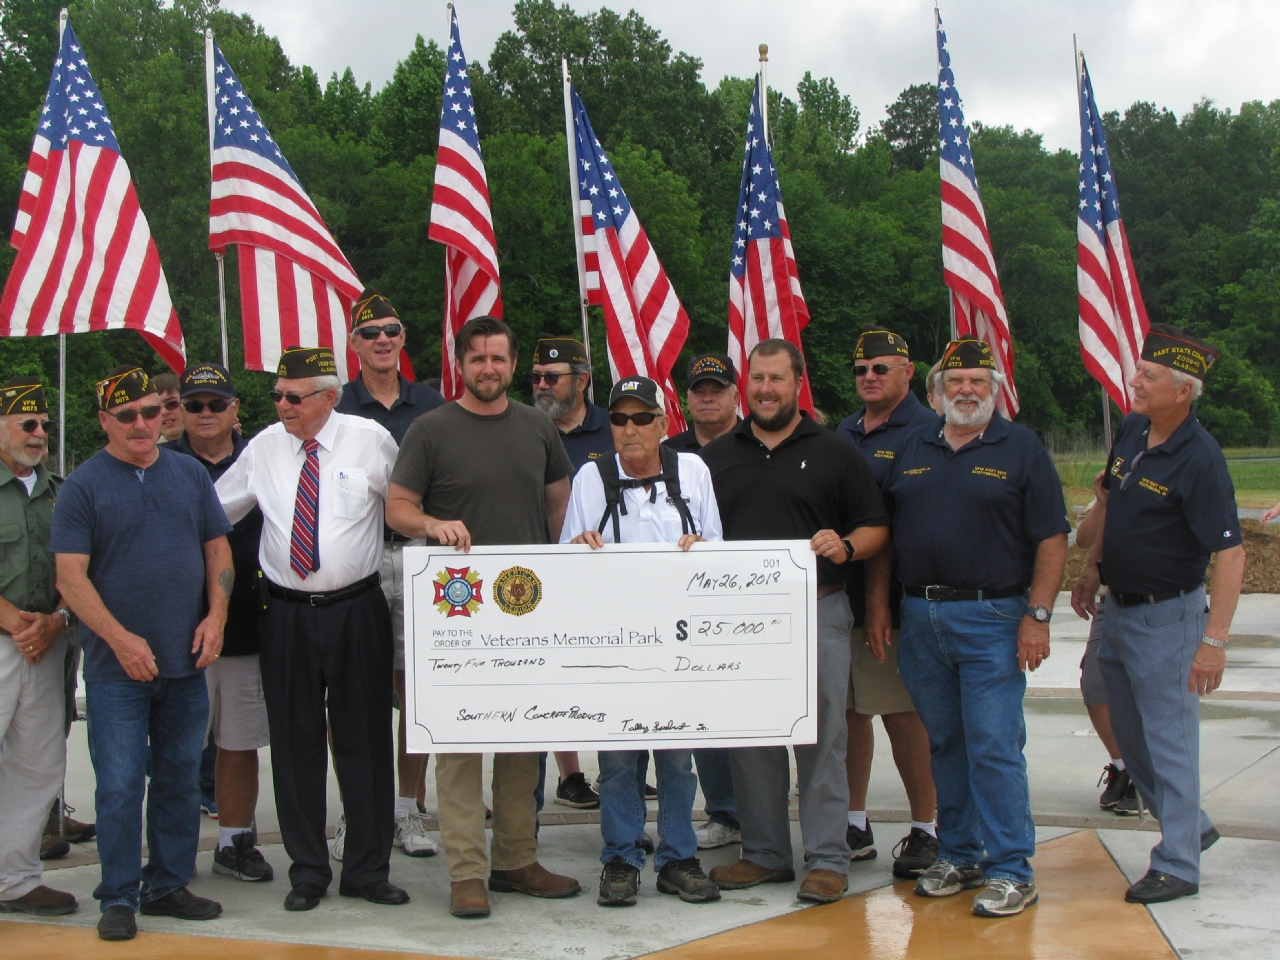 Members of VFW Post 6073 accept a Platinum donation to the Veterans Memorial Park during a celebration for the start of installation of the first inscribed brick pavers that have been purchased as a fund raiser for the park.